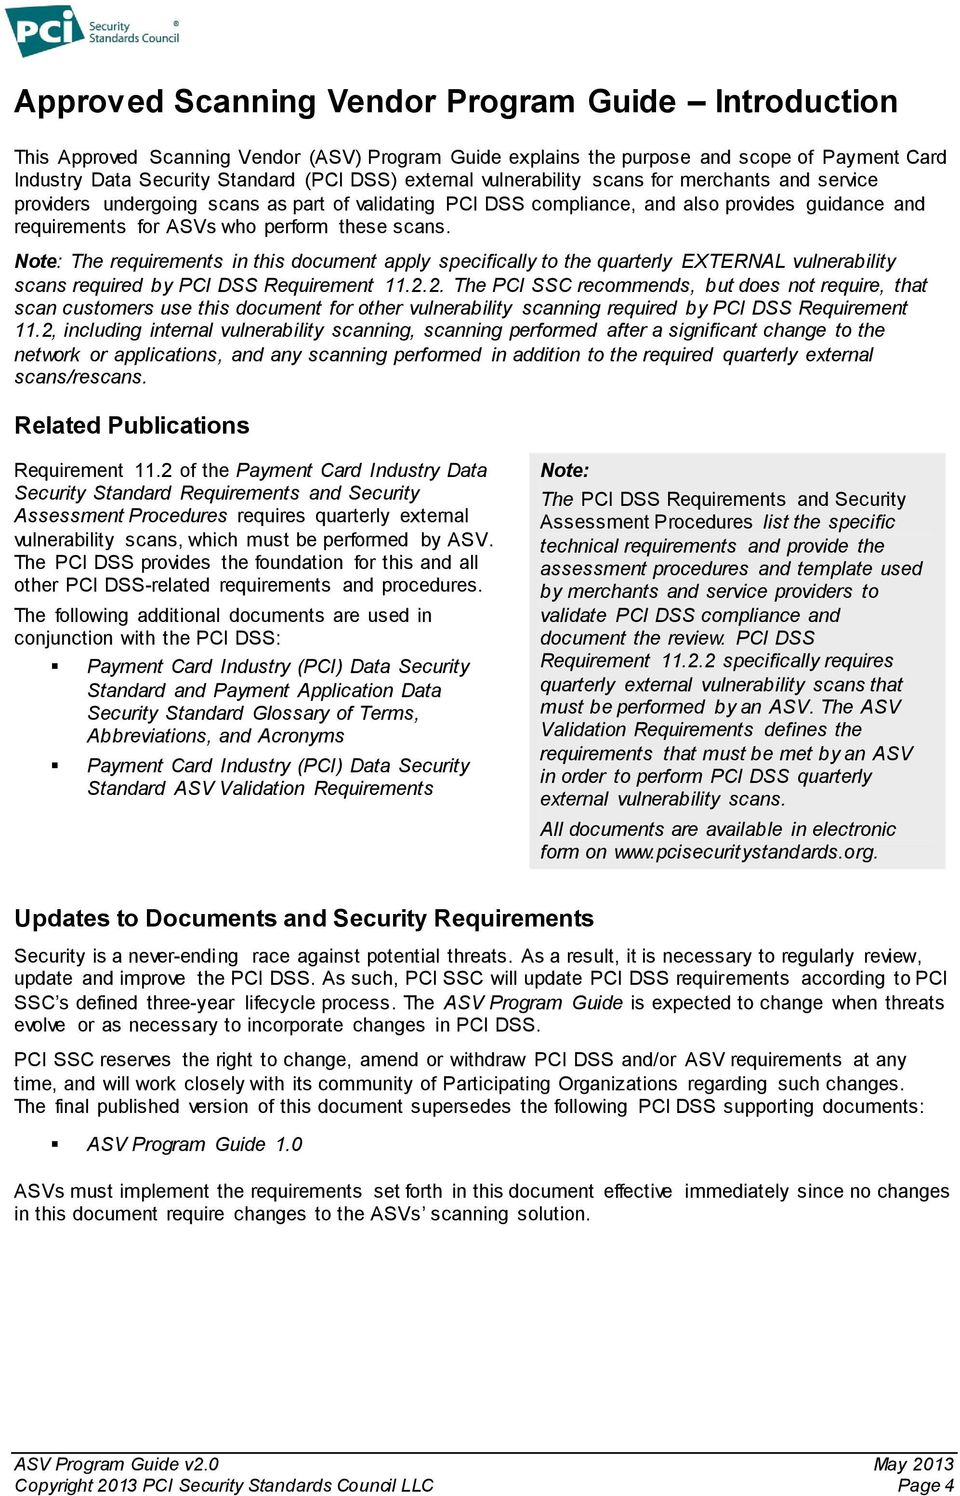 Note: The requirements in this document apply specifically to the quarterly EXTERNAL vulnerability scans required by PCI DSS Requirement 11.2.